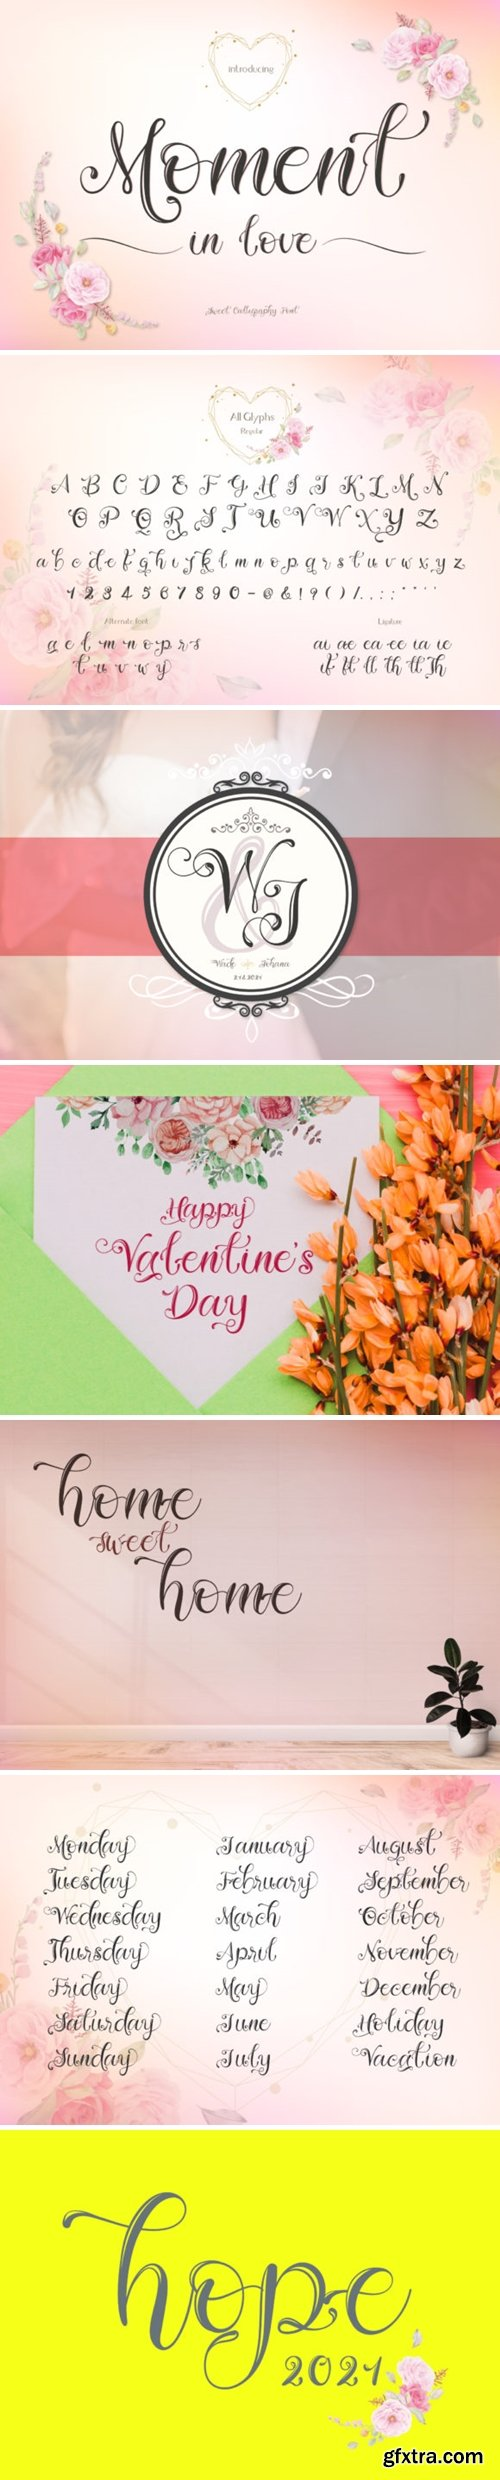 Moment in Love Font